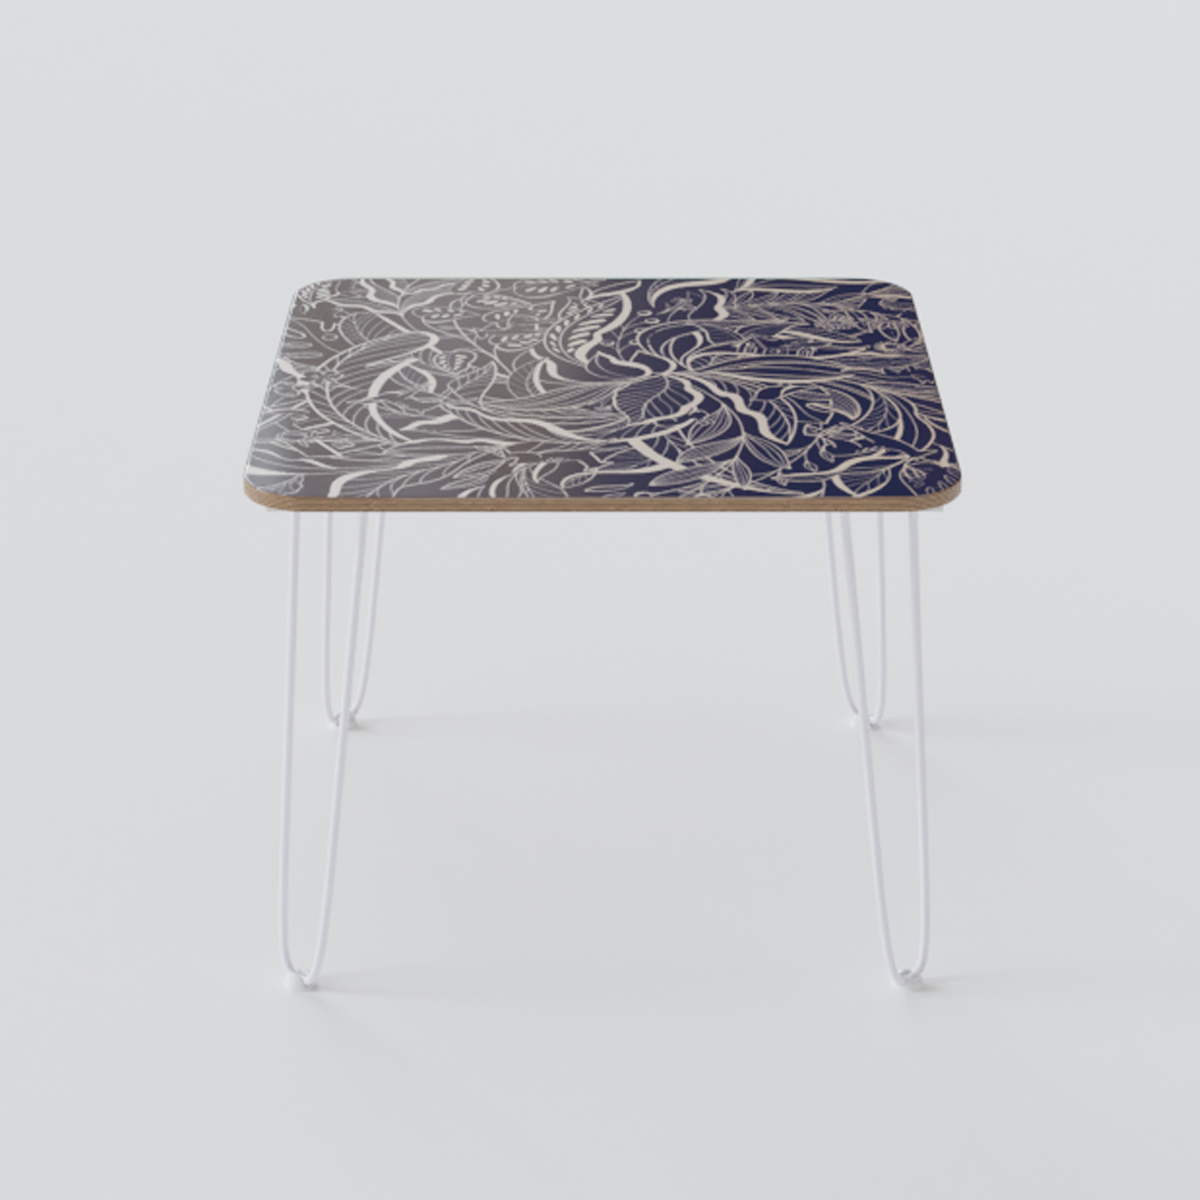 Chassie Forest Play Table